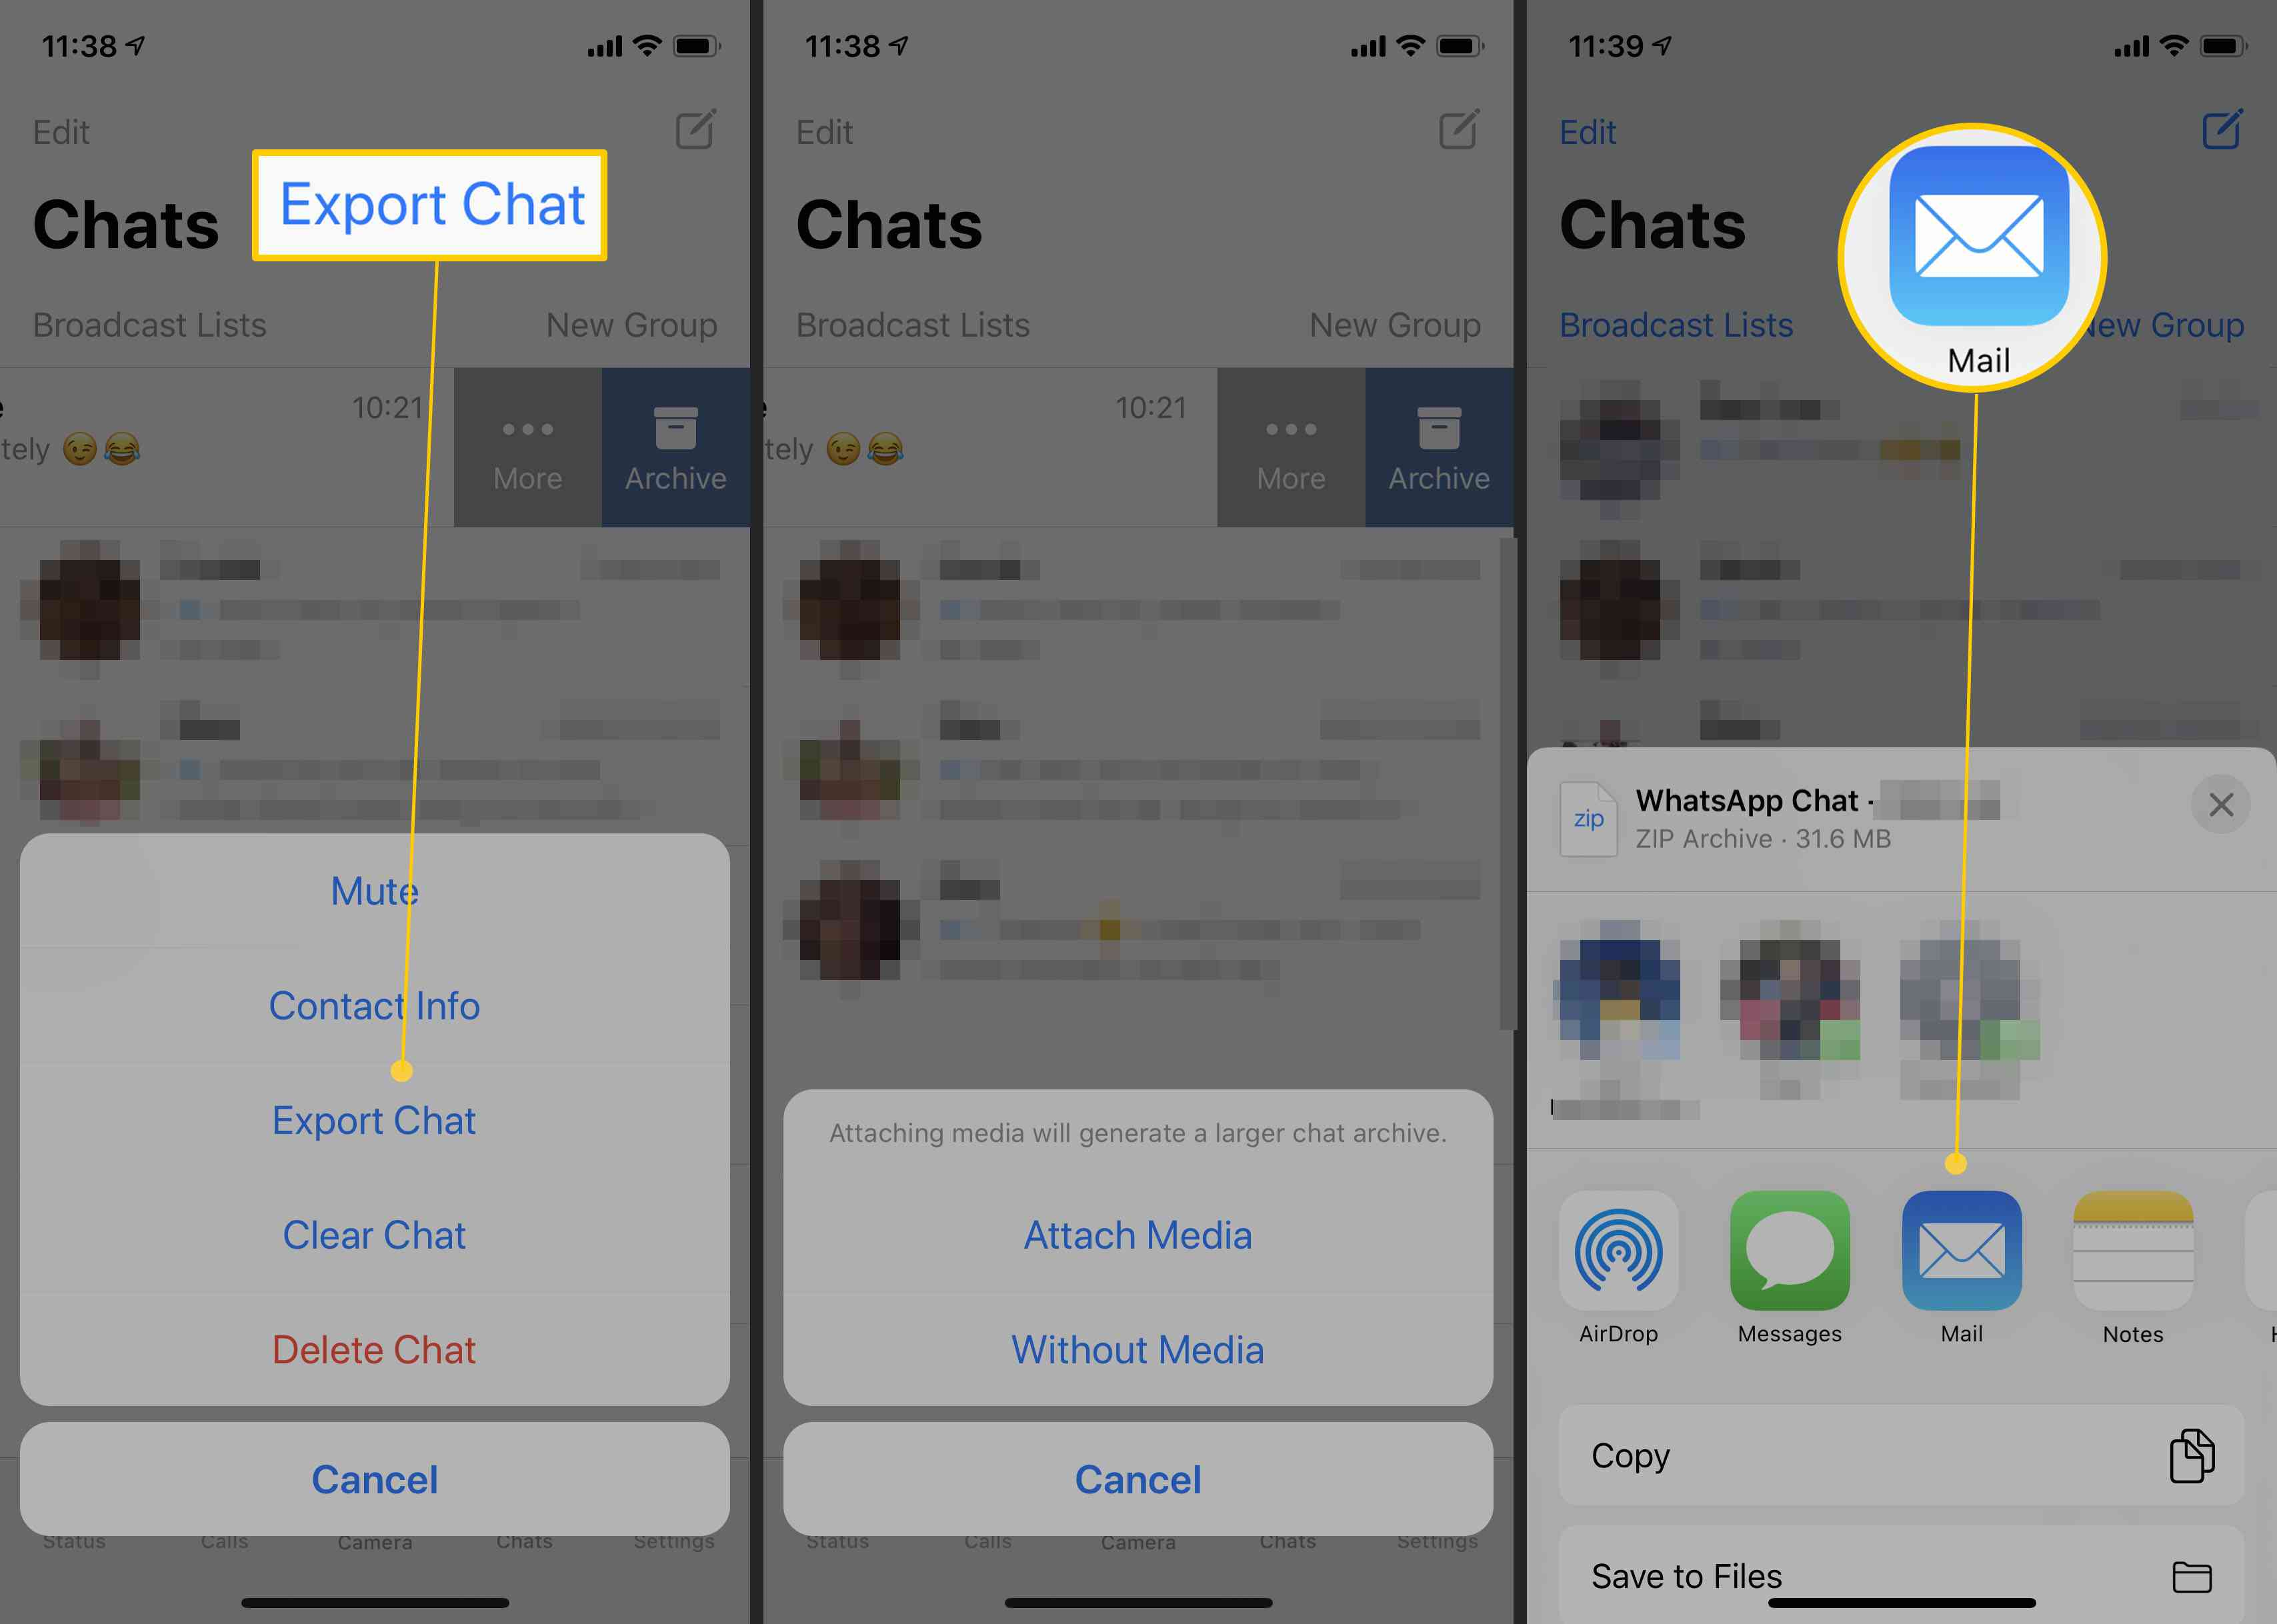 Steps for exporting your WhatsApp chats to a different location or email address